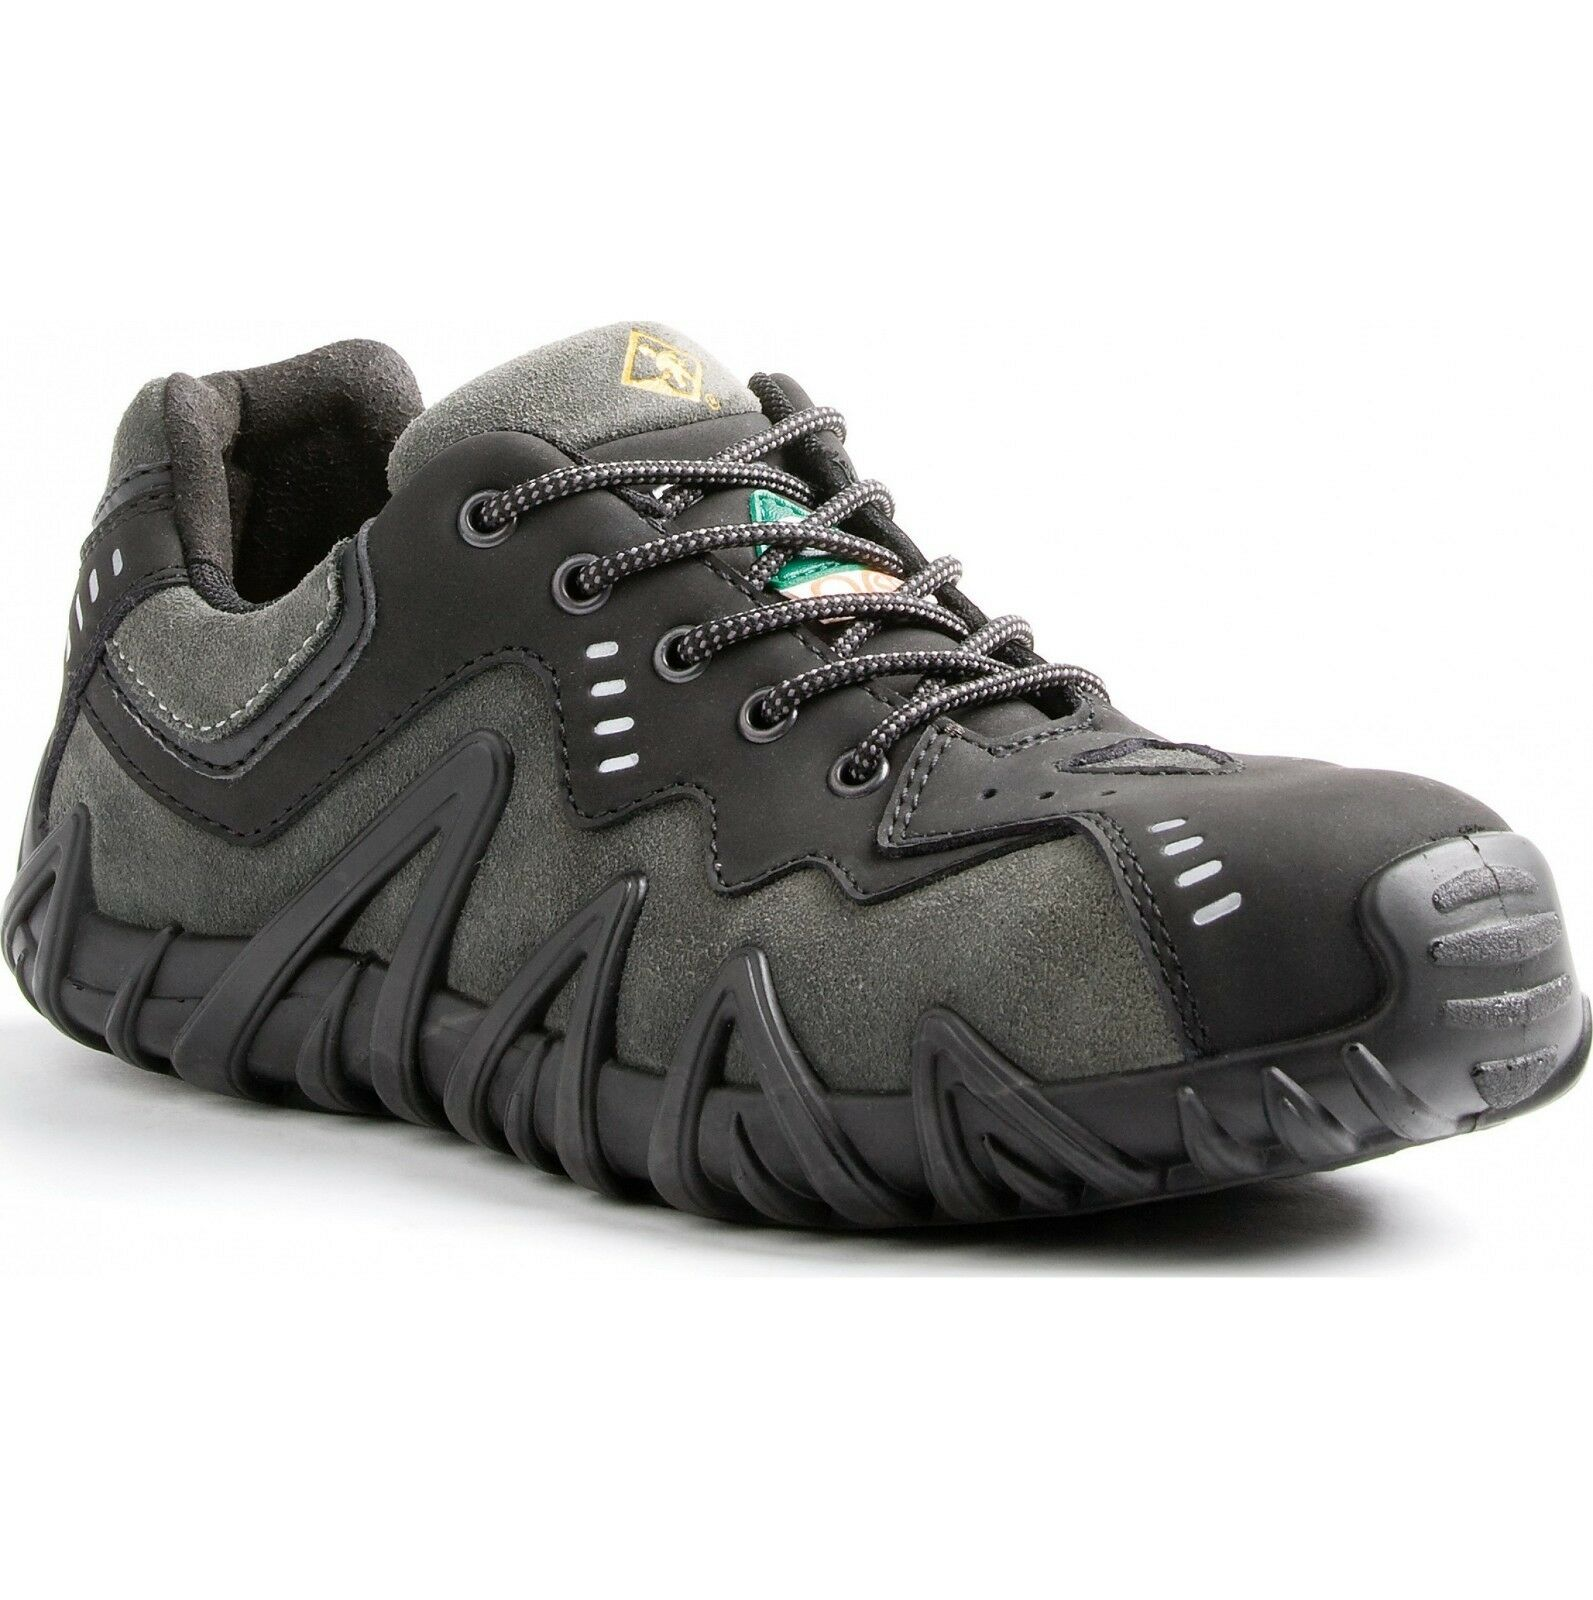 Dickies Terra Spider Safety Trainer Sizes 5.5 - 13 Grey TE606115